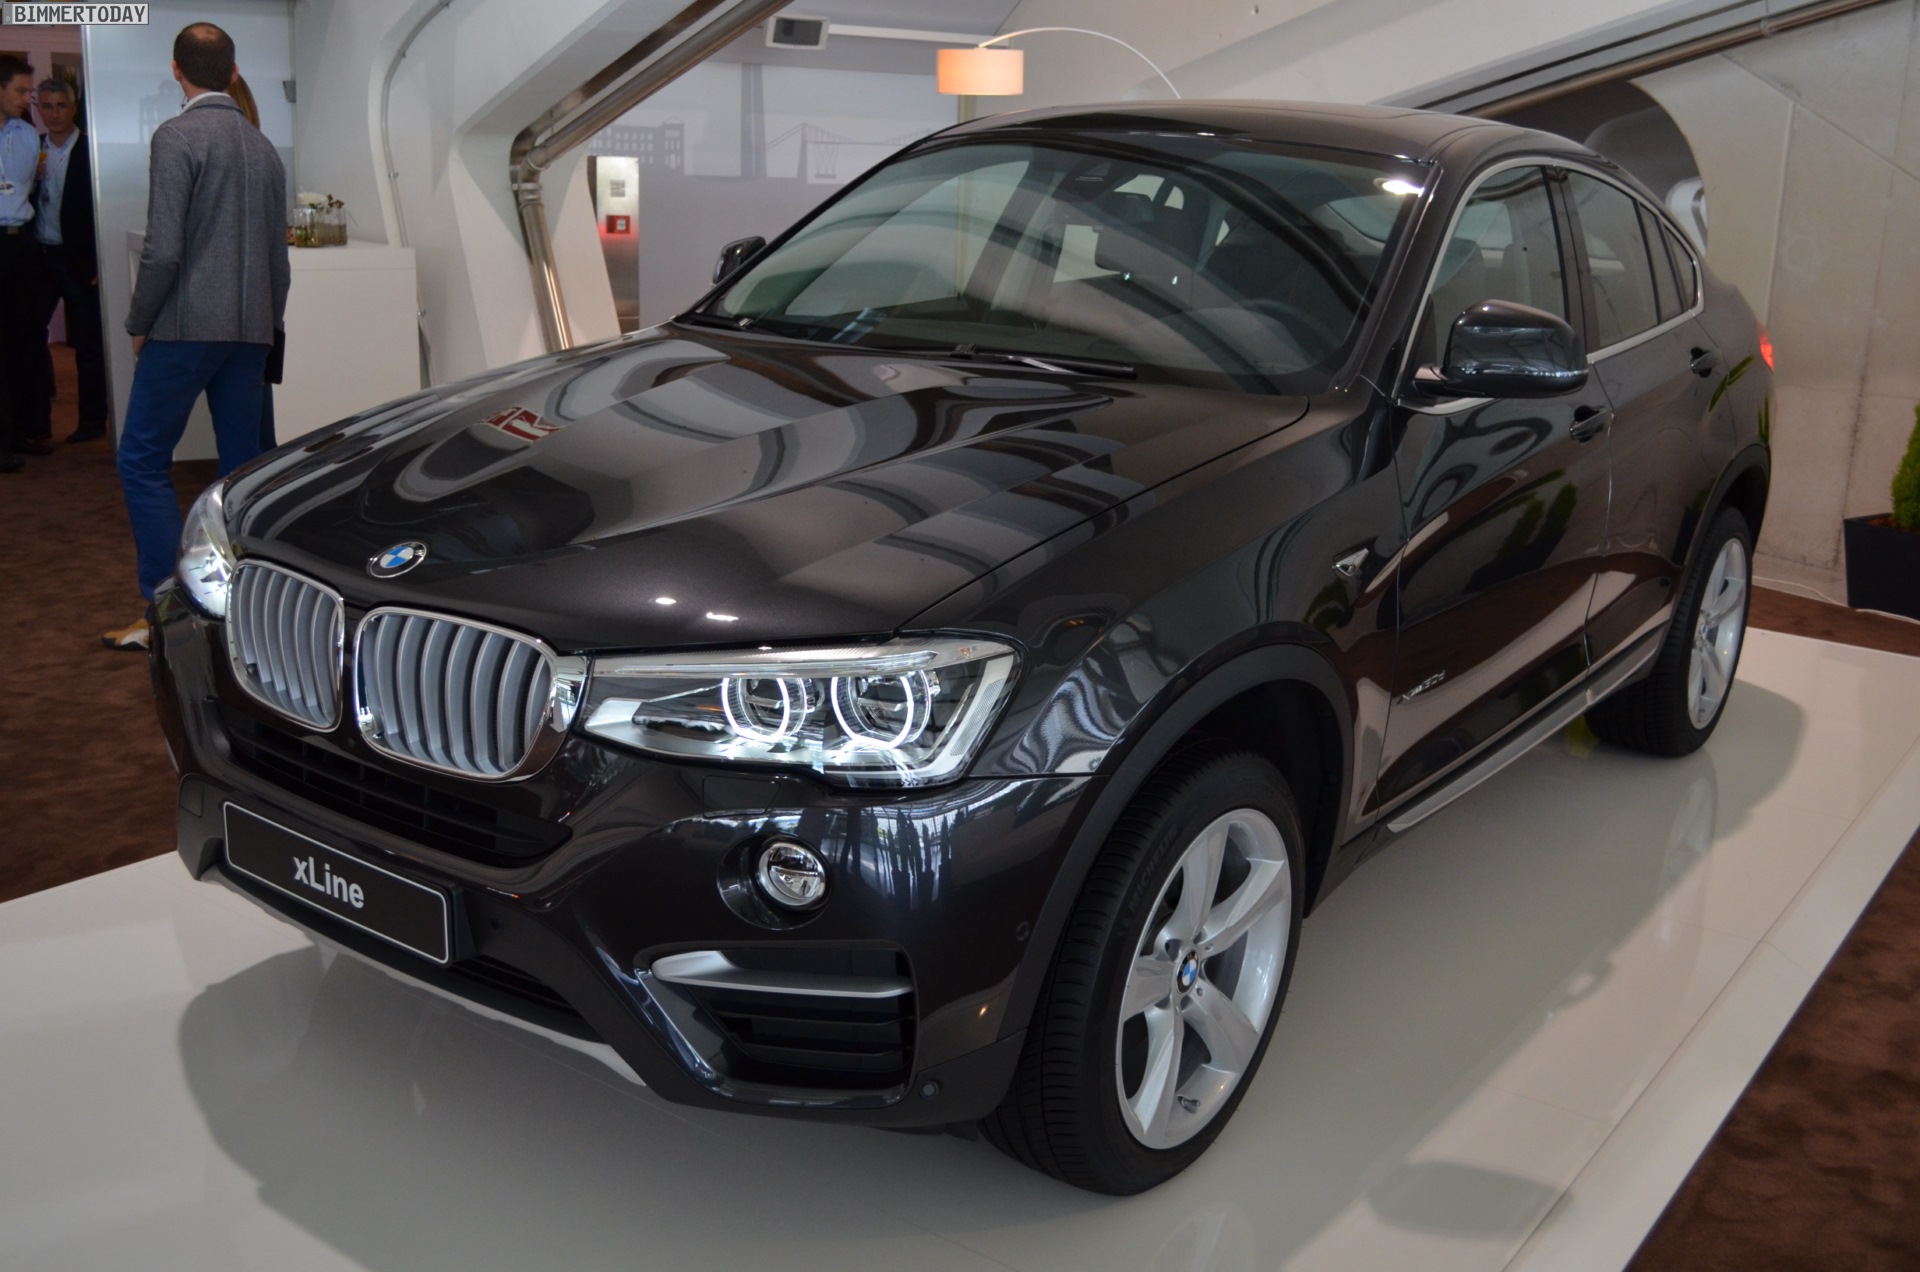 live fotos bmw x4 mit xline paket x4 xdrive30d f26 in sophistograu. Black Bedroom Furniture Sets. Home Design Ideas